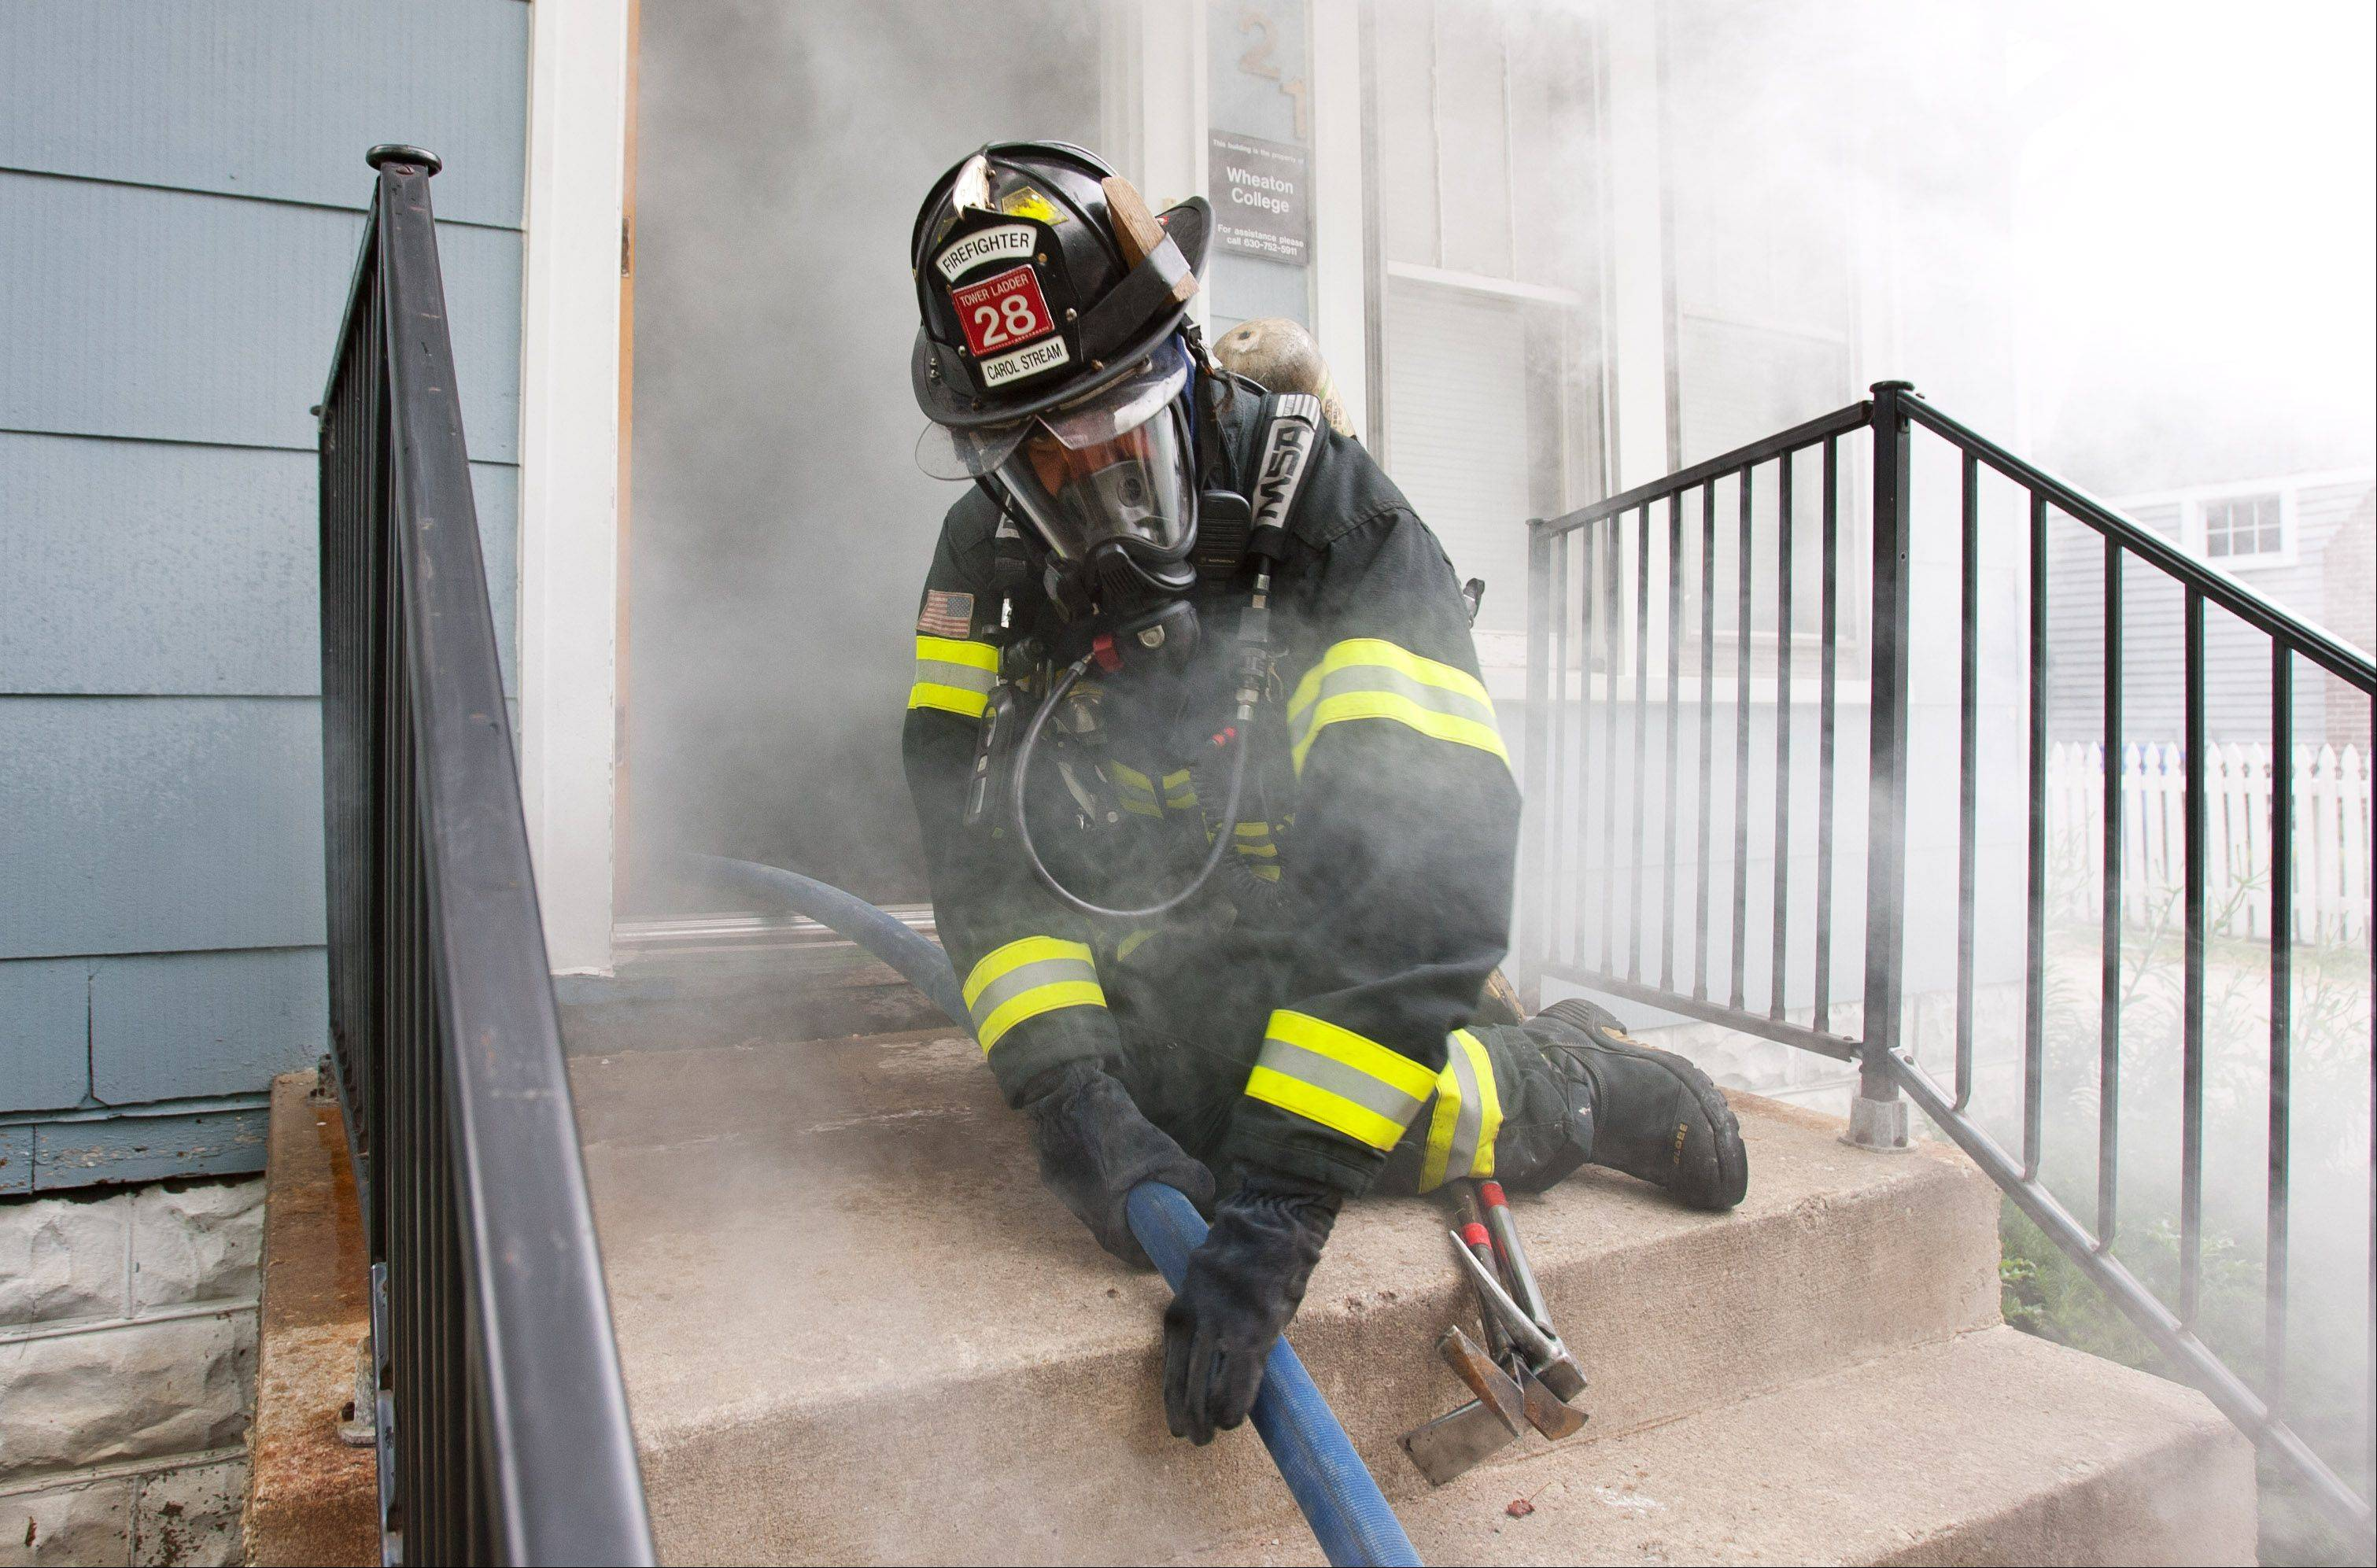 A Carol Stream firefighter pulls in hose, during a cooperative fire training exercise between the Carol Stream, Wheaton, Winfield and West Chicago fire departments.